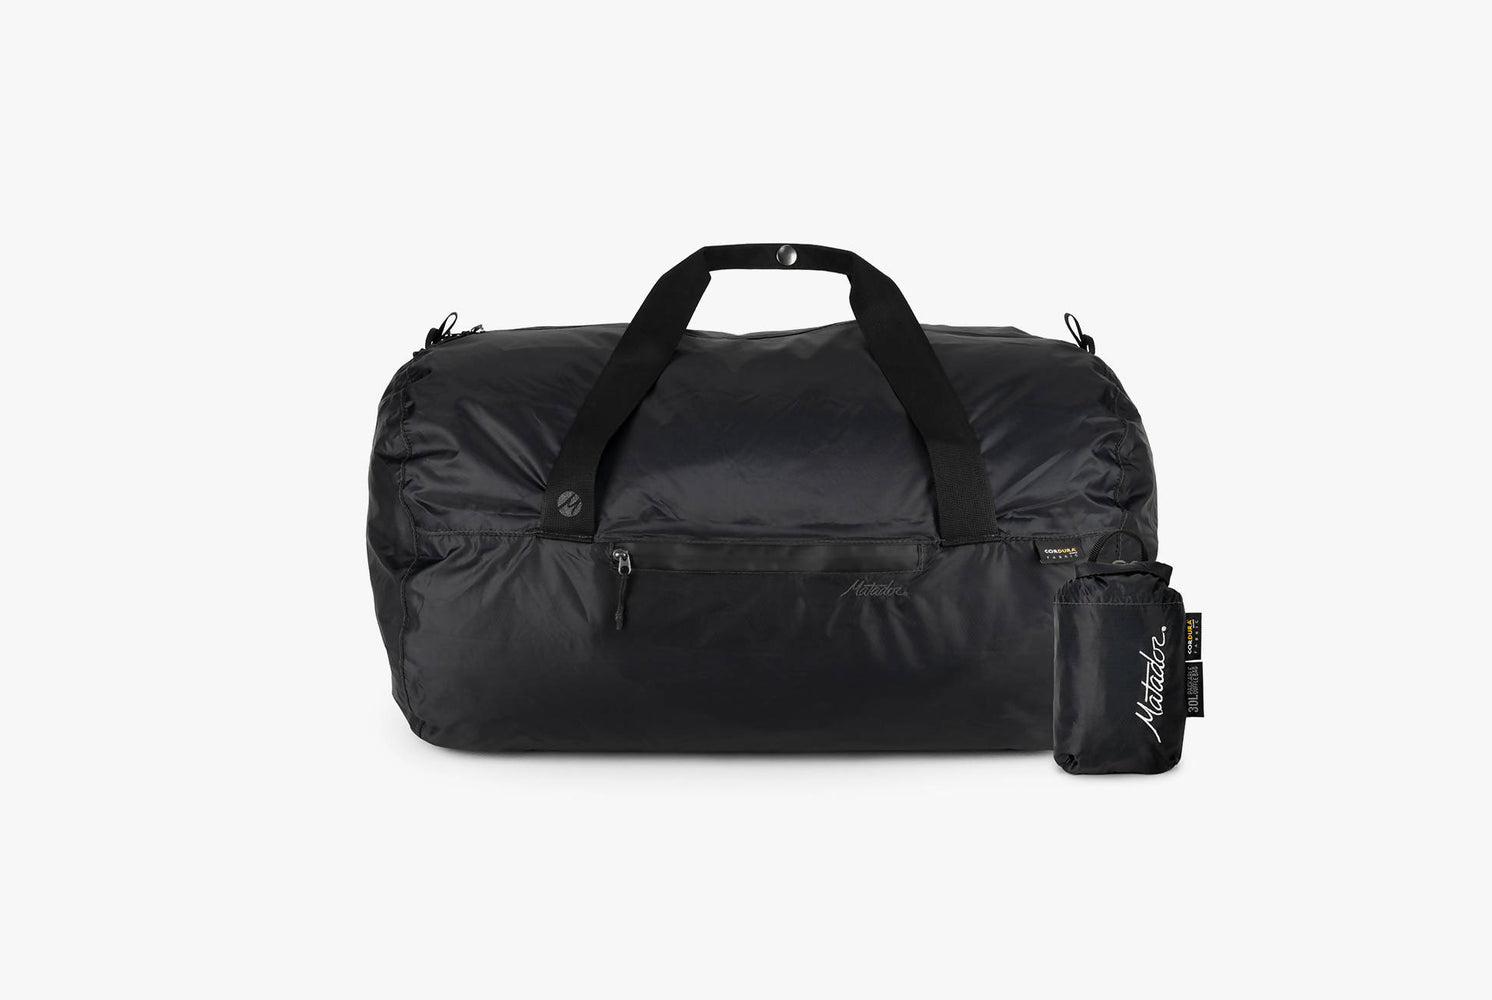 Matador Transit30 2.0 Duffel Bag - Black - front view of duffel next to compact carrying case